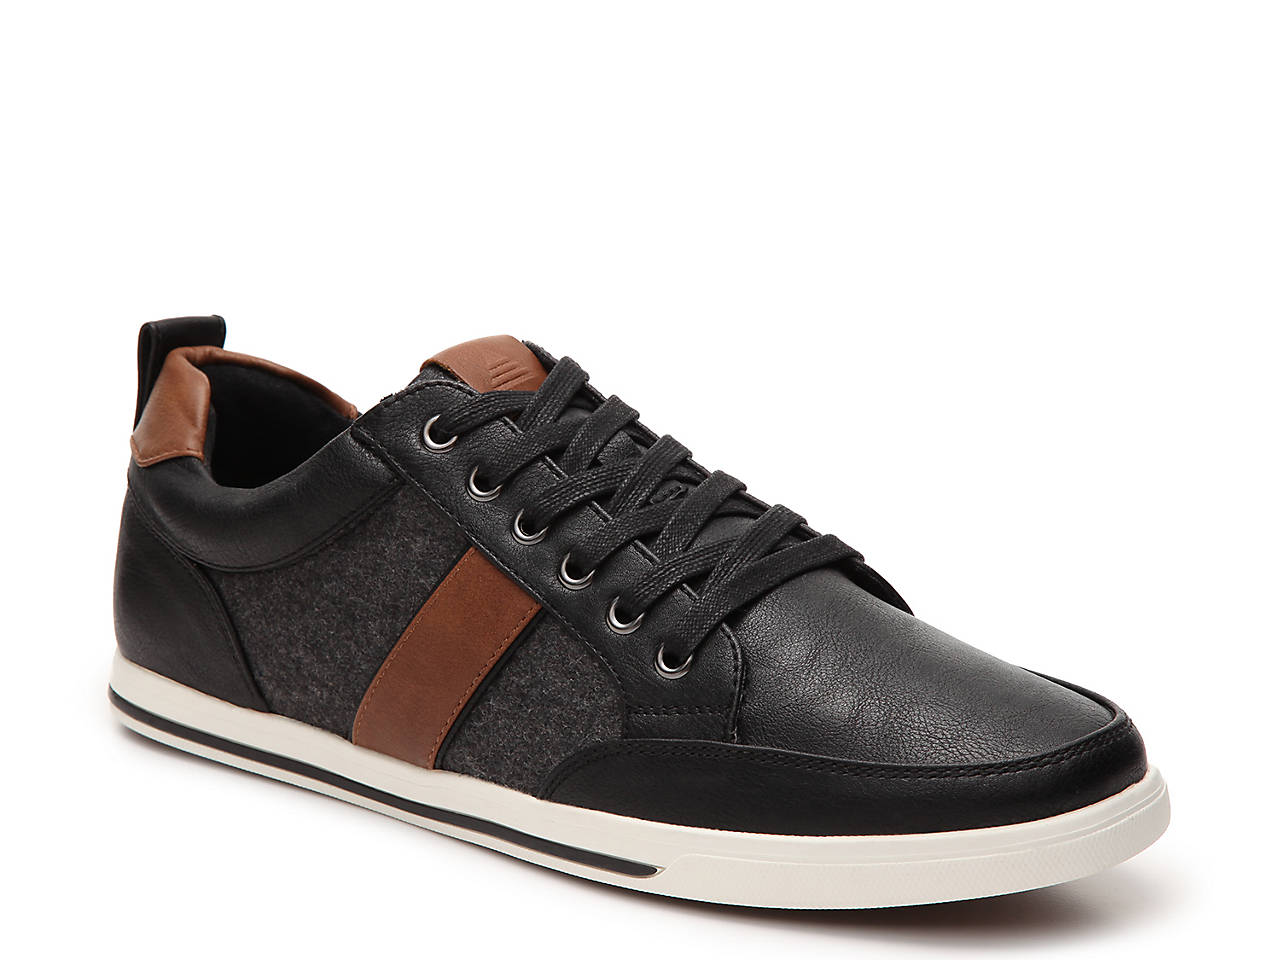 Dsw Aldo Mens Shoes